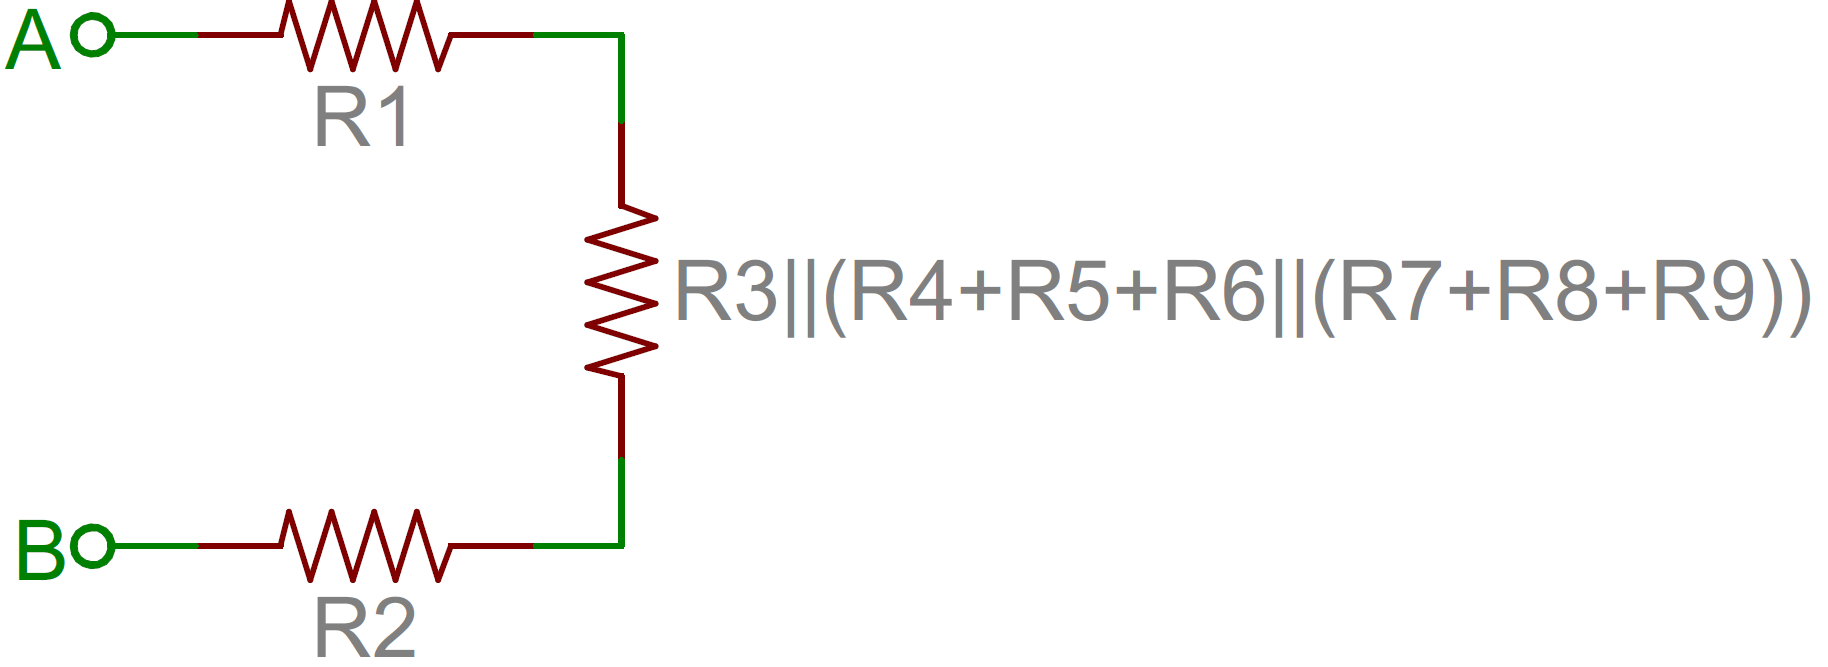 hight resolution of resistor network further simplified